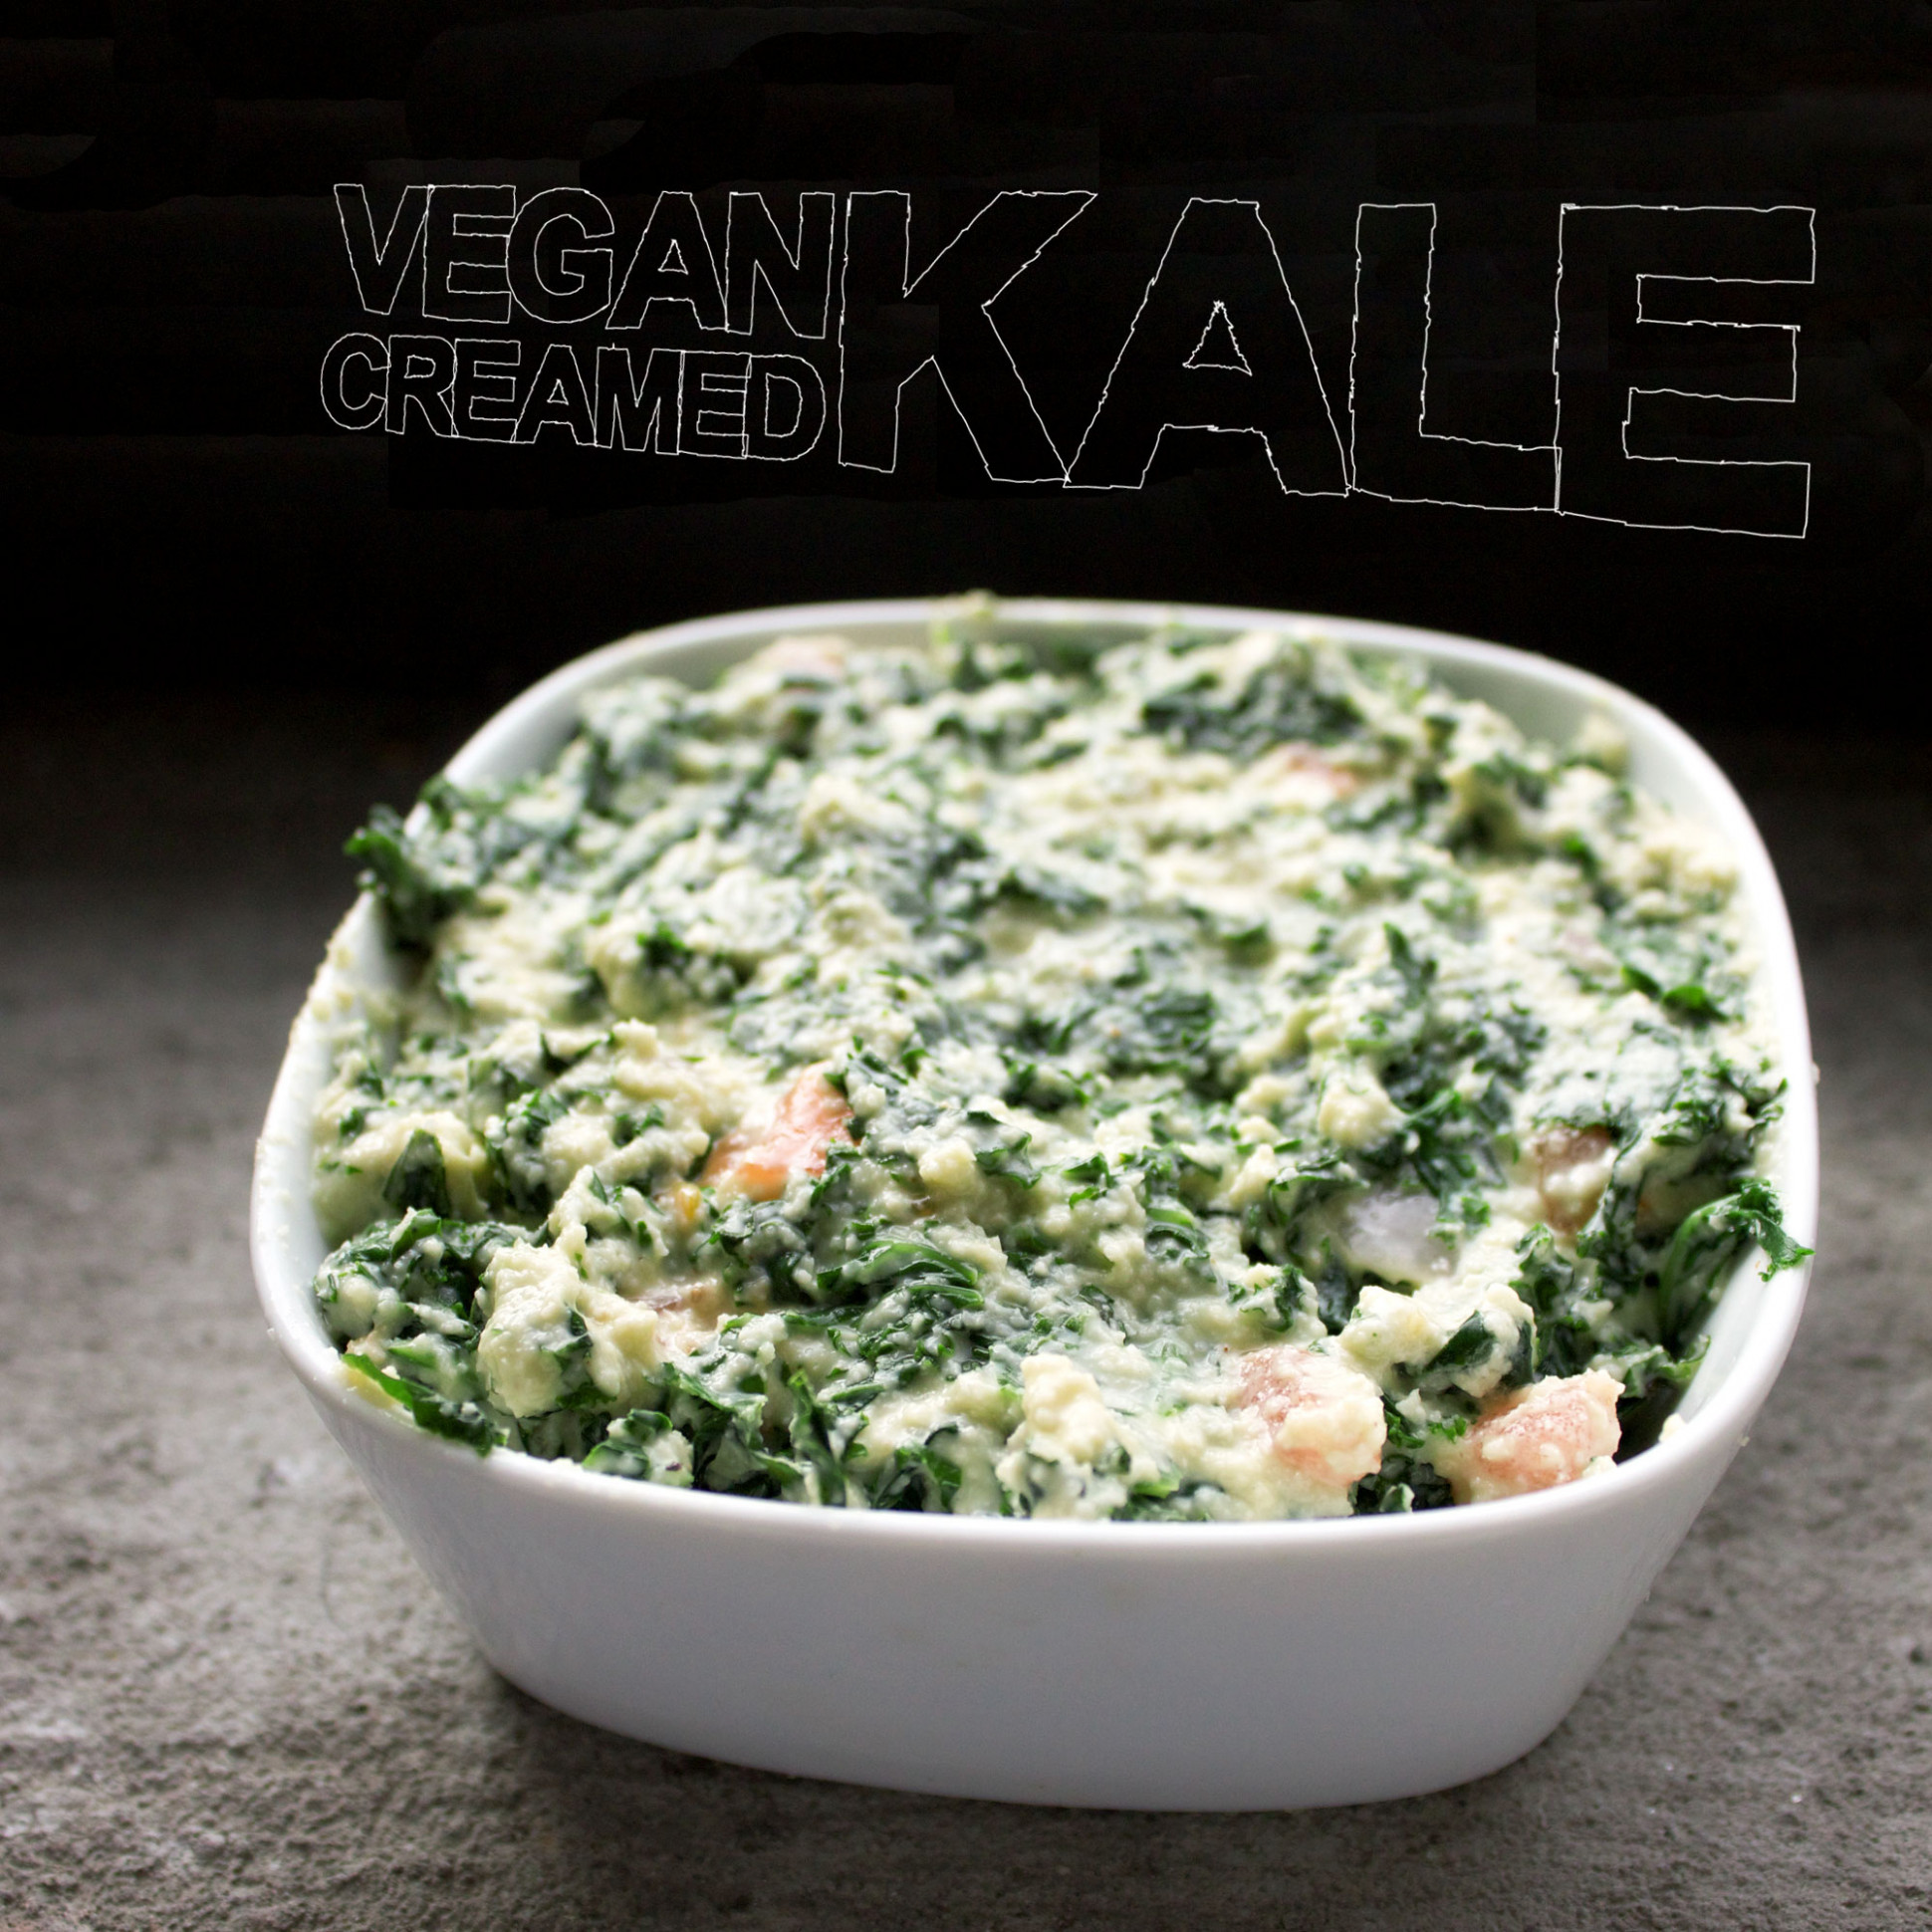 Creamed Kale [vegan] | Quiche-a-Week - kale recipes vegetarian